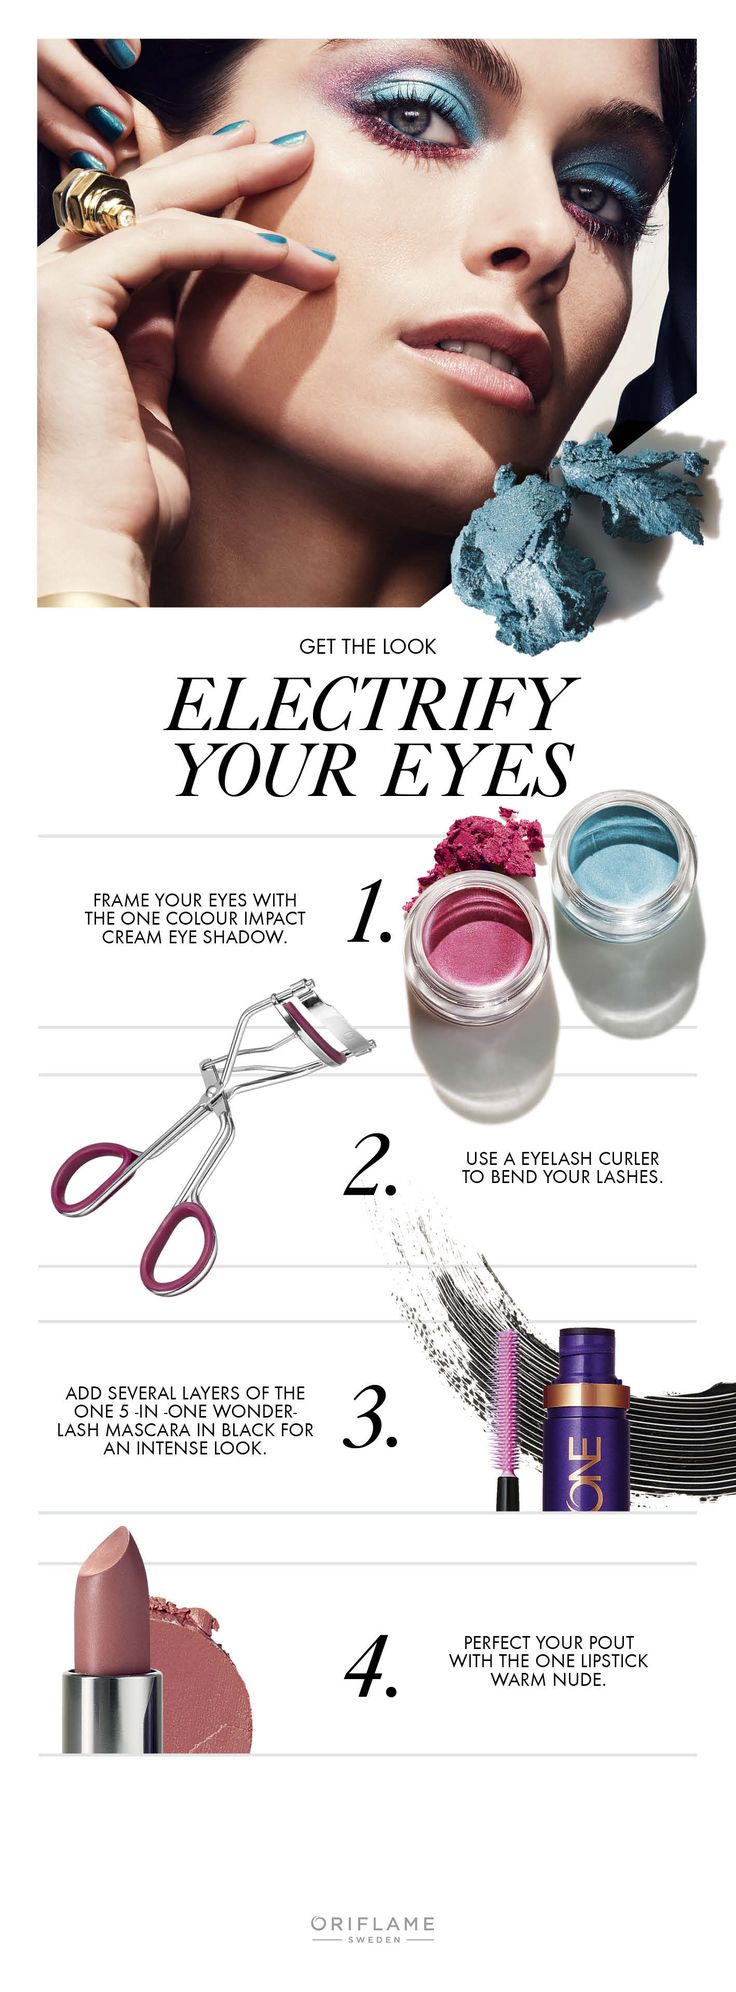 Electrify your eyes! #getthelook #oriflame - https://www.facebook.com/TienditadeBellezaLaguna/